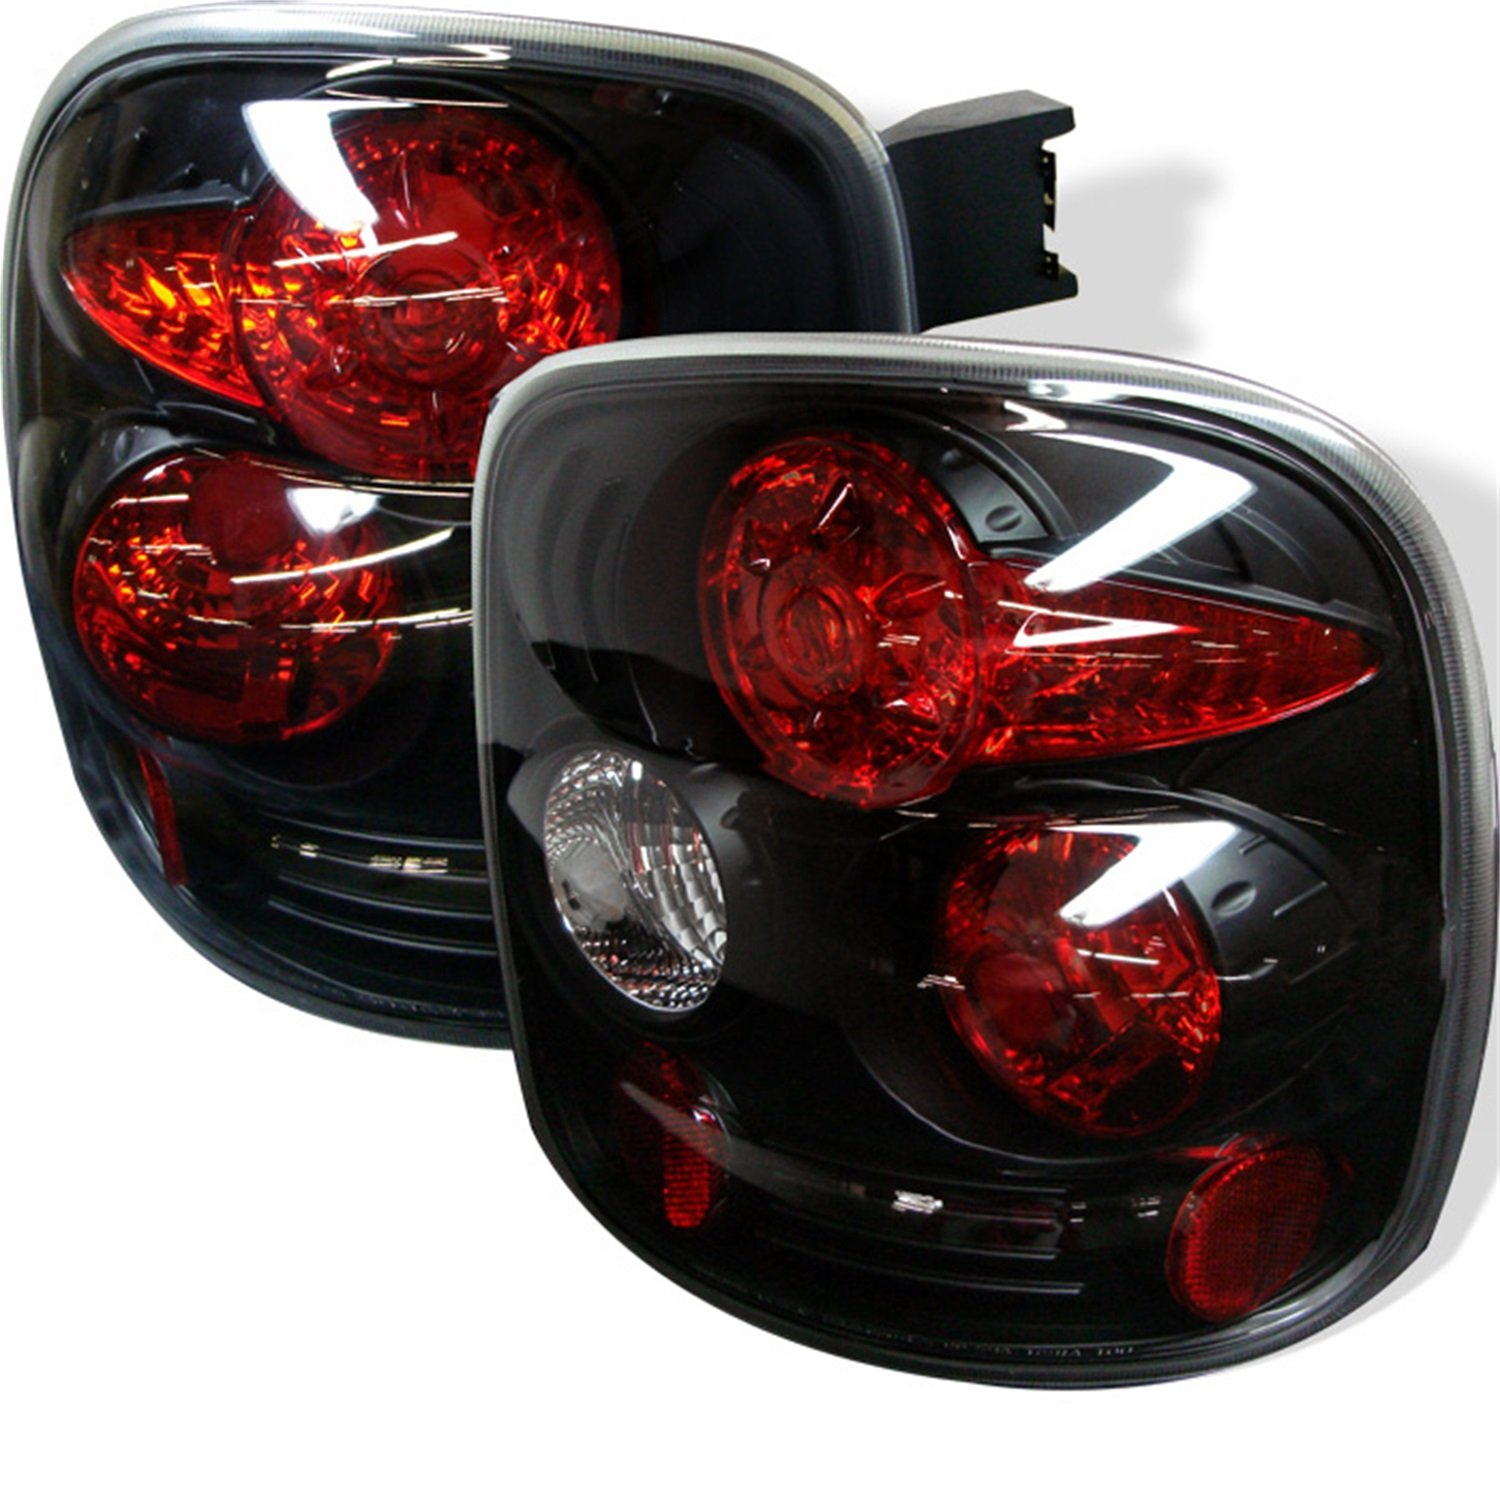 Amazon.com: Spyder Auto Chevy Silverado Stepside Black Altezza Tail Light:  Automotive